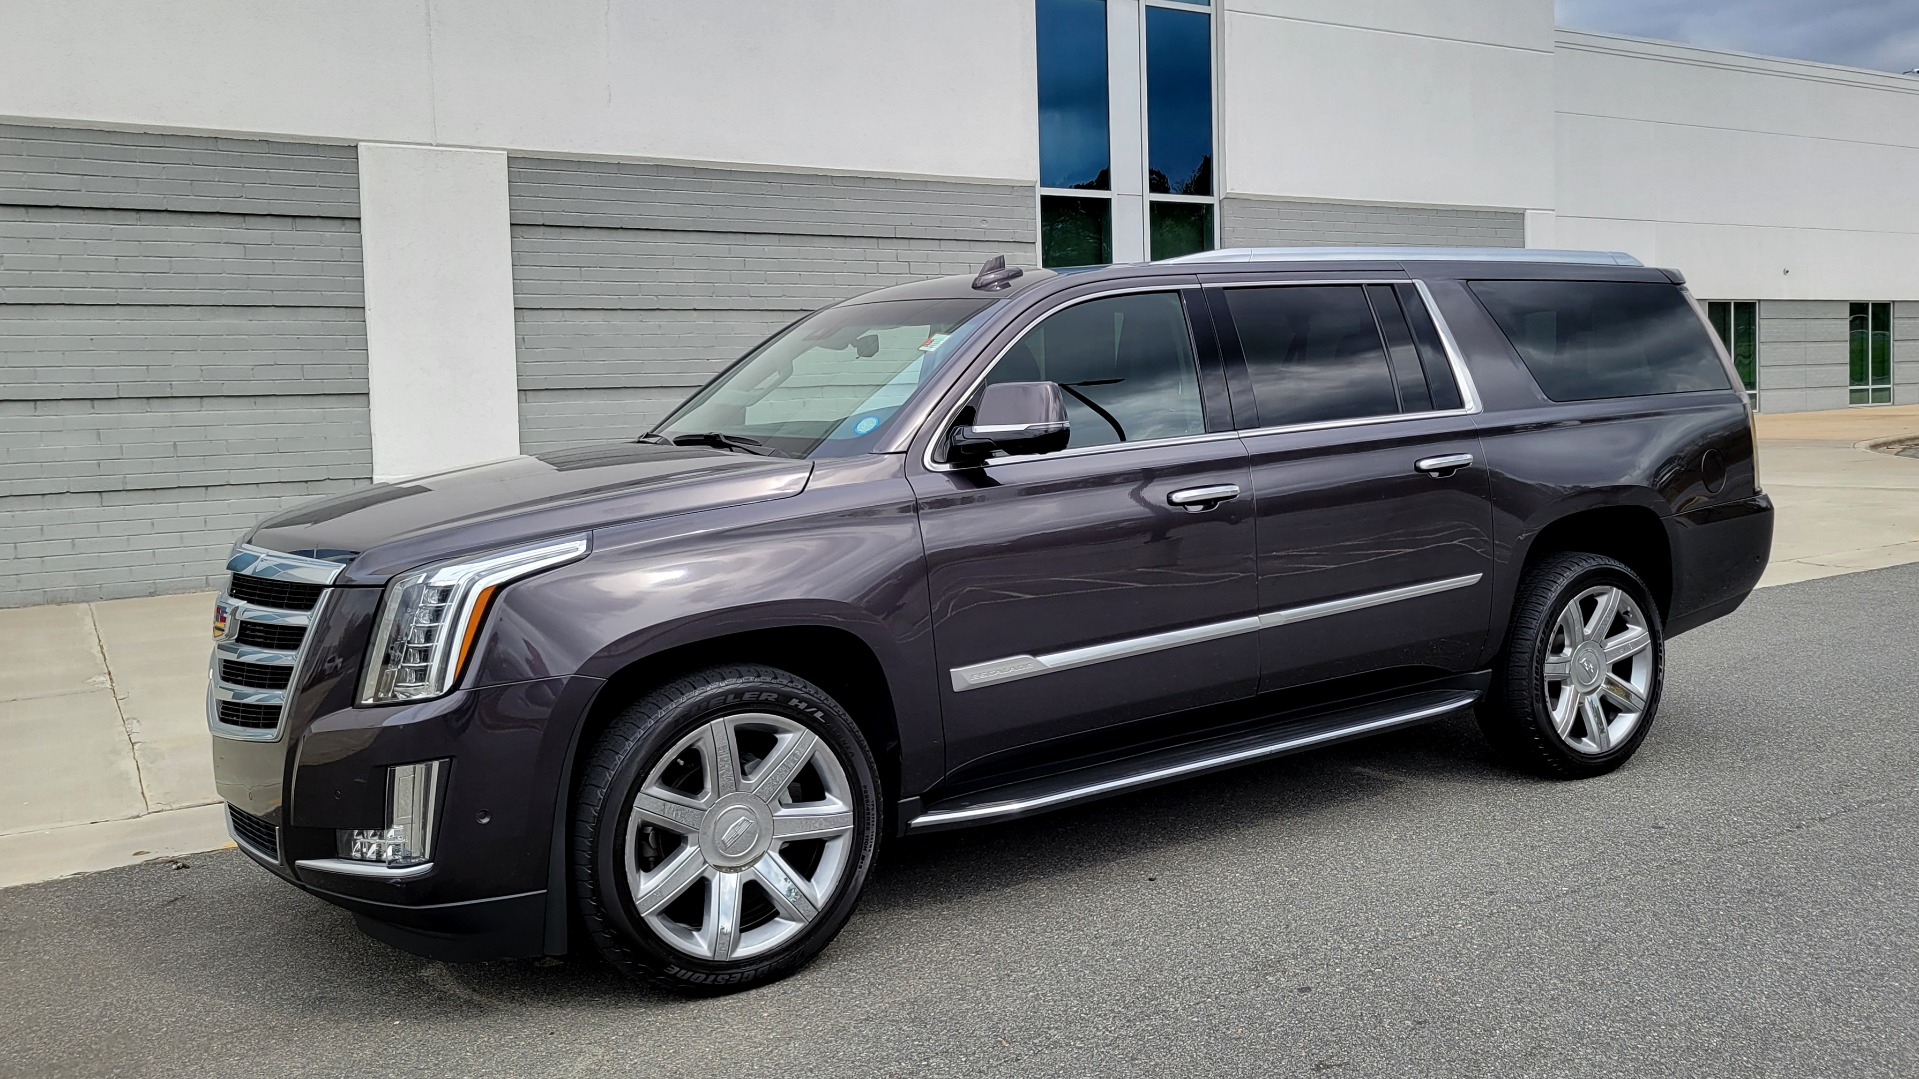 Used 2018 Cadillac ESCALADE ESV LUXURY 4WD / NAV / SUNROOF / ENTERTAIN / REARVIEW / 3-ROW for sale Sold at Formula Imports in Charlotte NC 28227 4